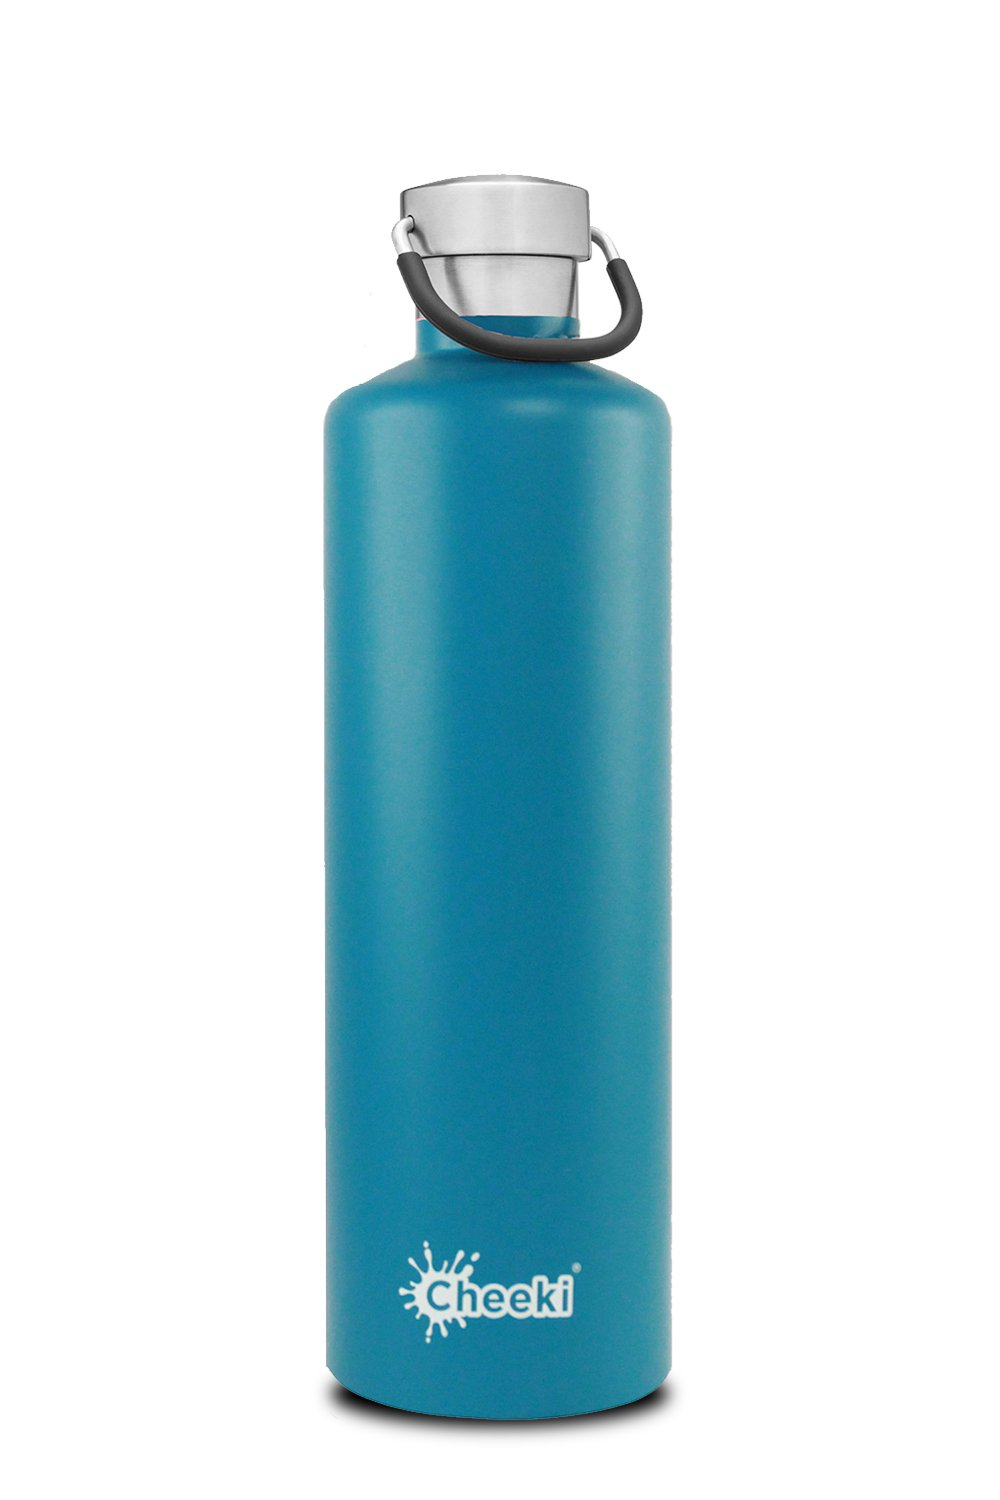 Cheeki Insulated 1L Drink Bottle - Topaz